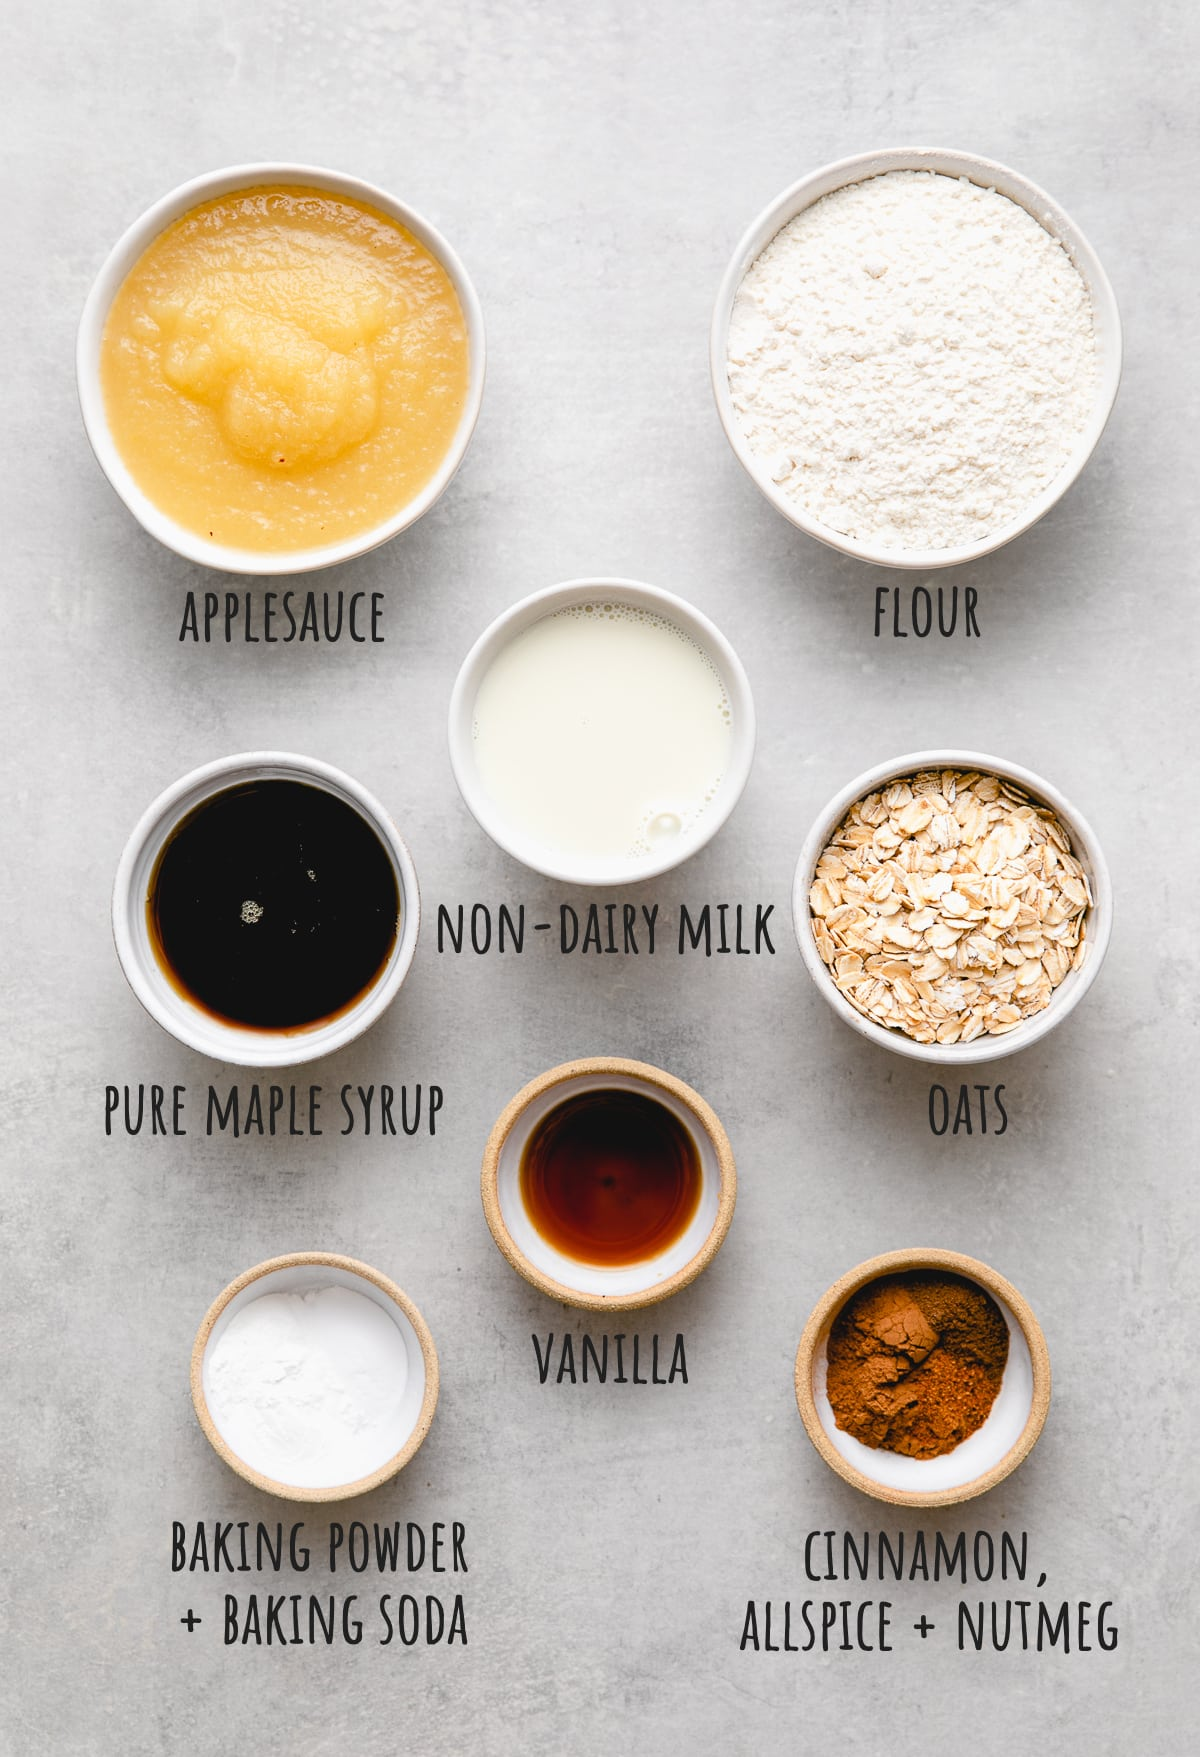 top down view of ingredients used to make applesauce bread.